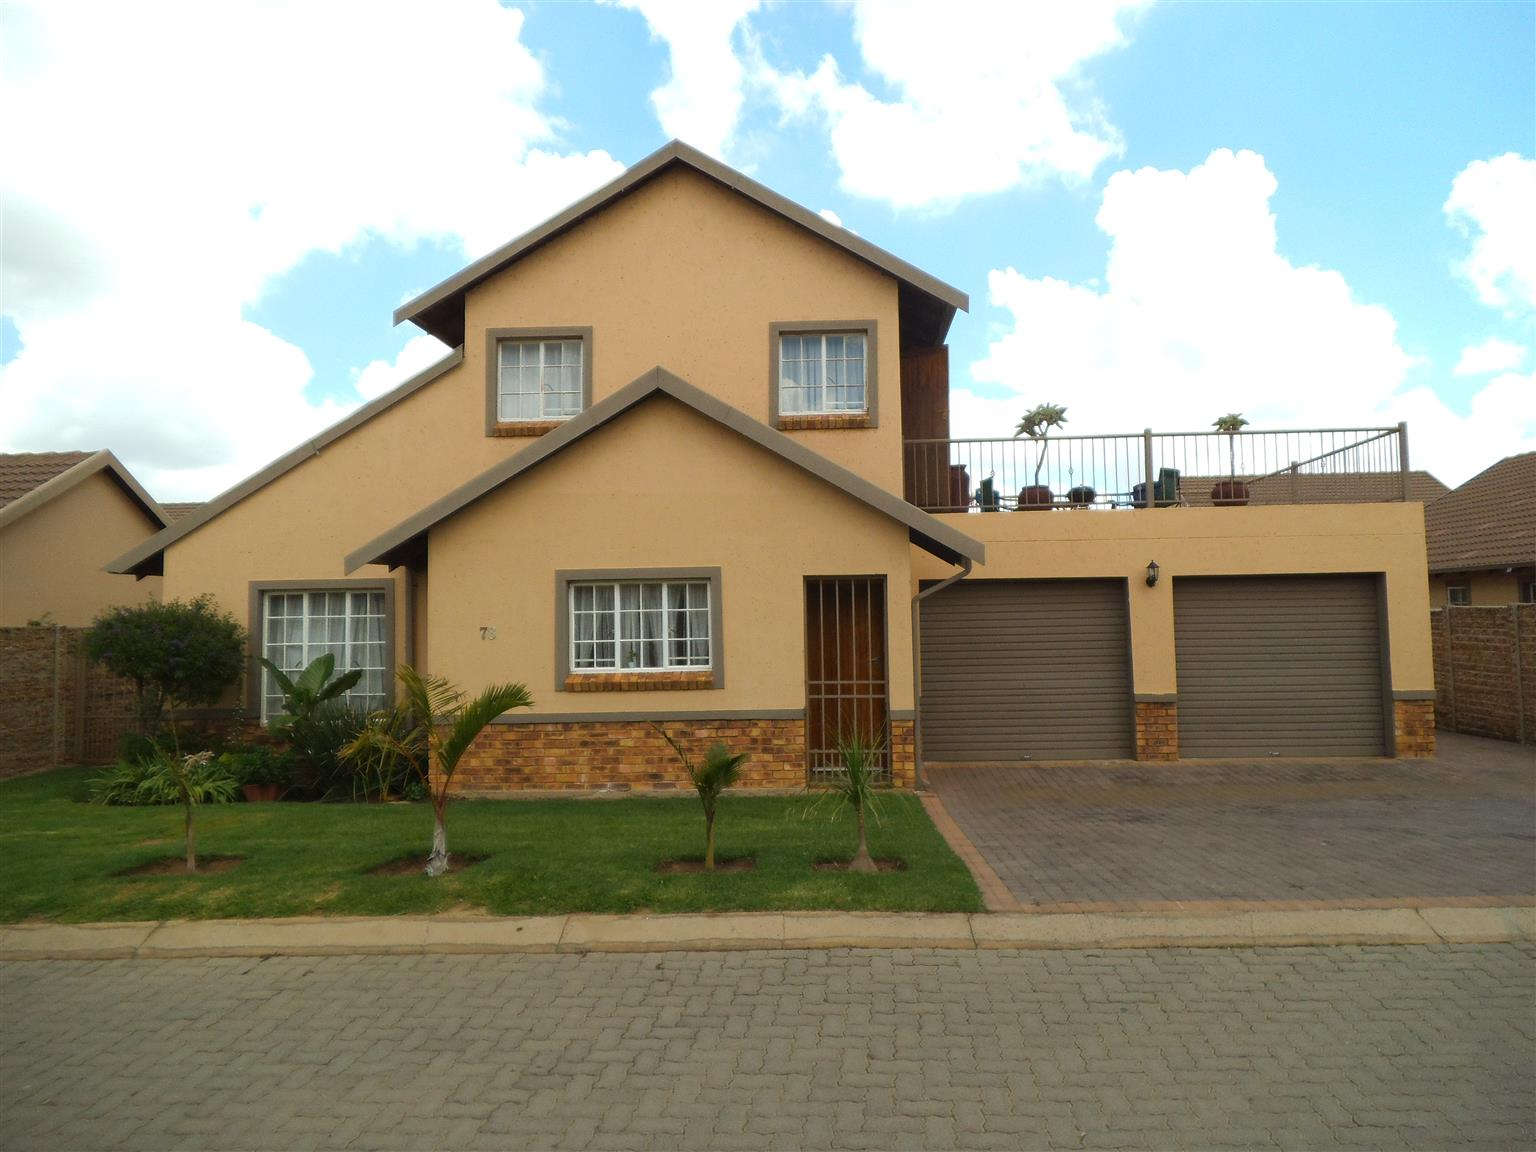 4 Bedroom house in security complex